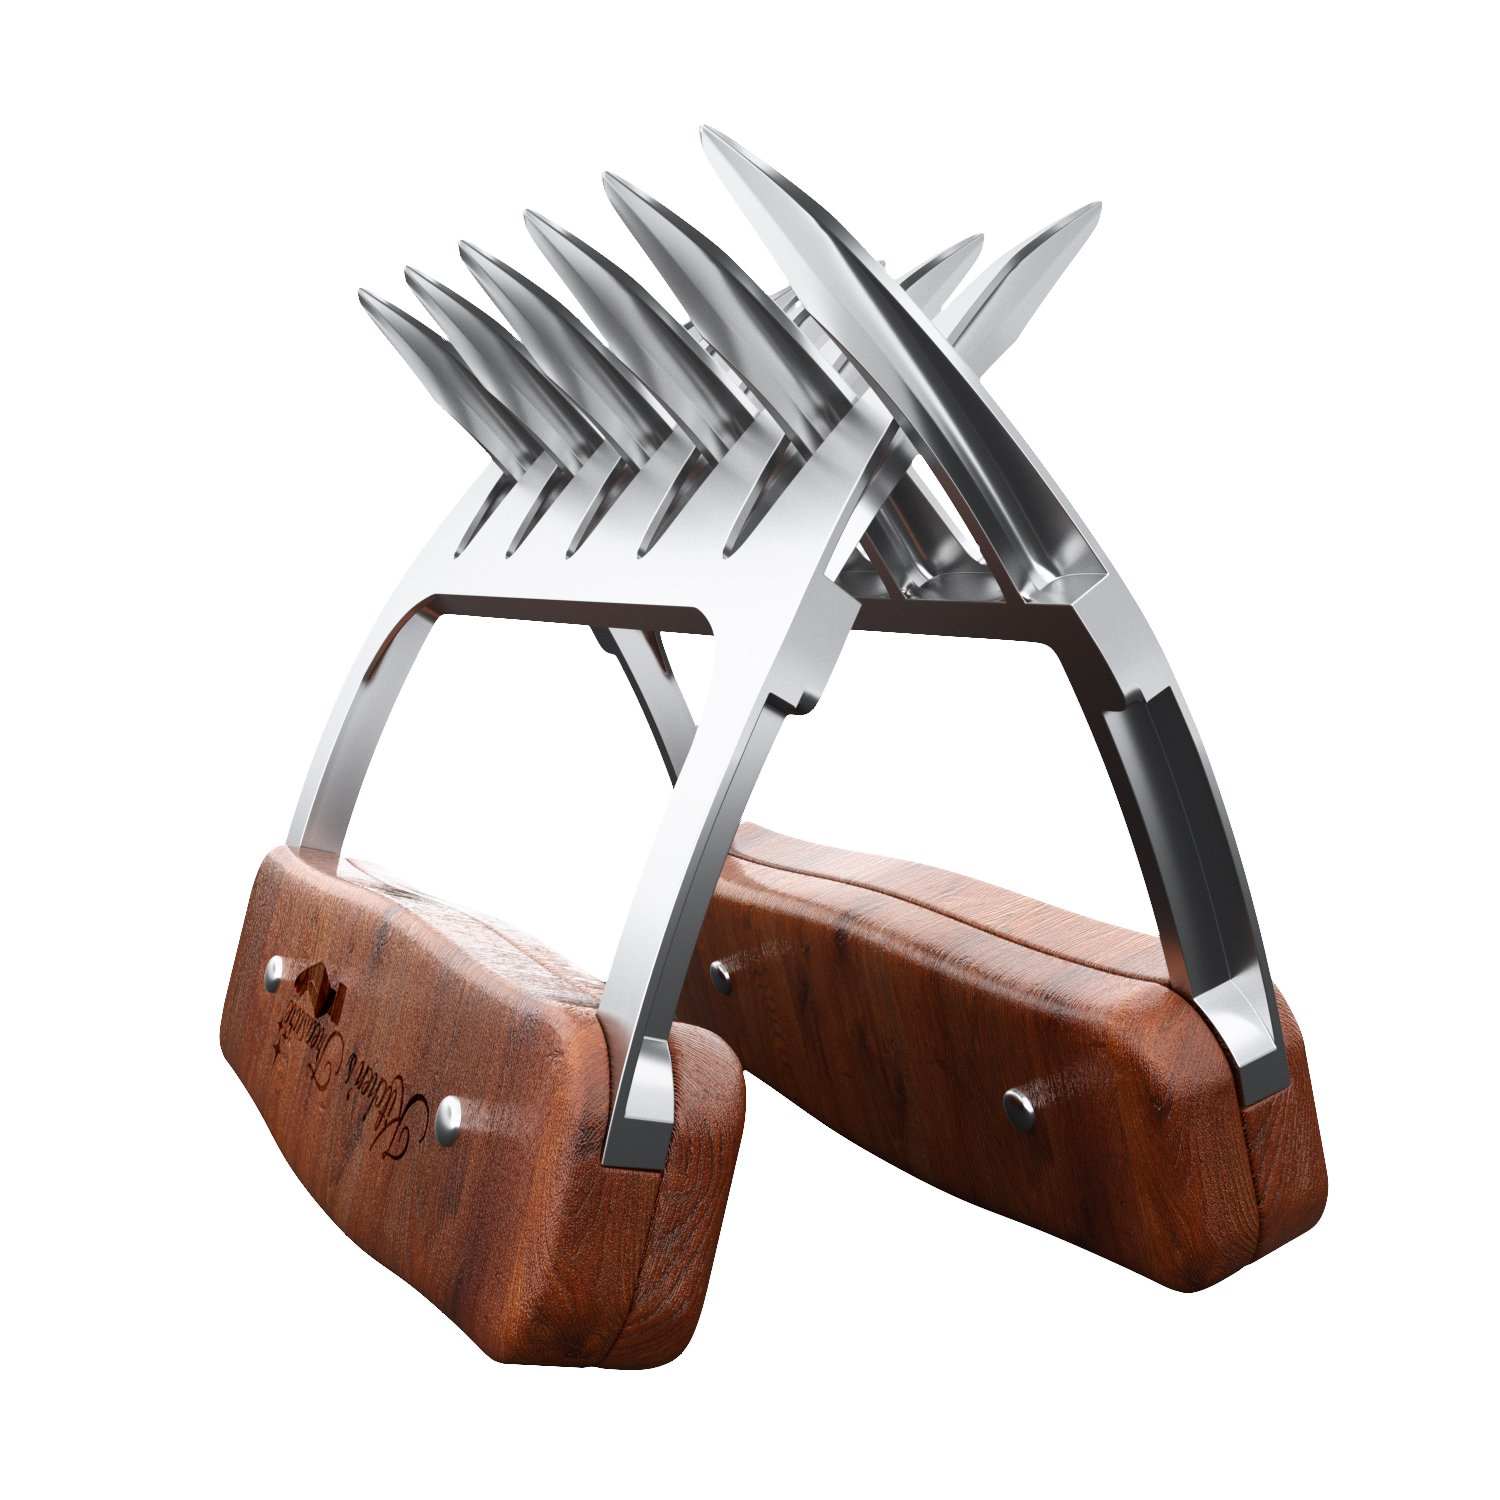 Metal meat claws - Stainless steel- BBQ chicken,Pork Pullers Paws with durable wooden handles - Meat Shredding Forks and Hooks for Lifting, Handling, Shred Roasts and Briskets (2PCS)